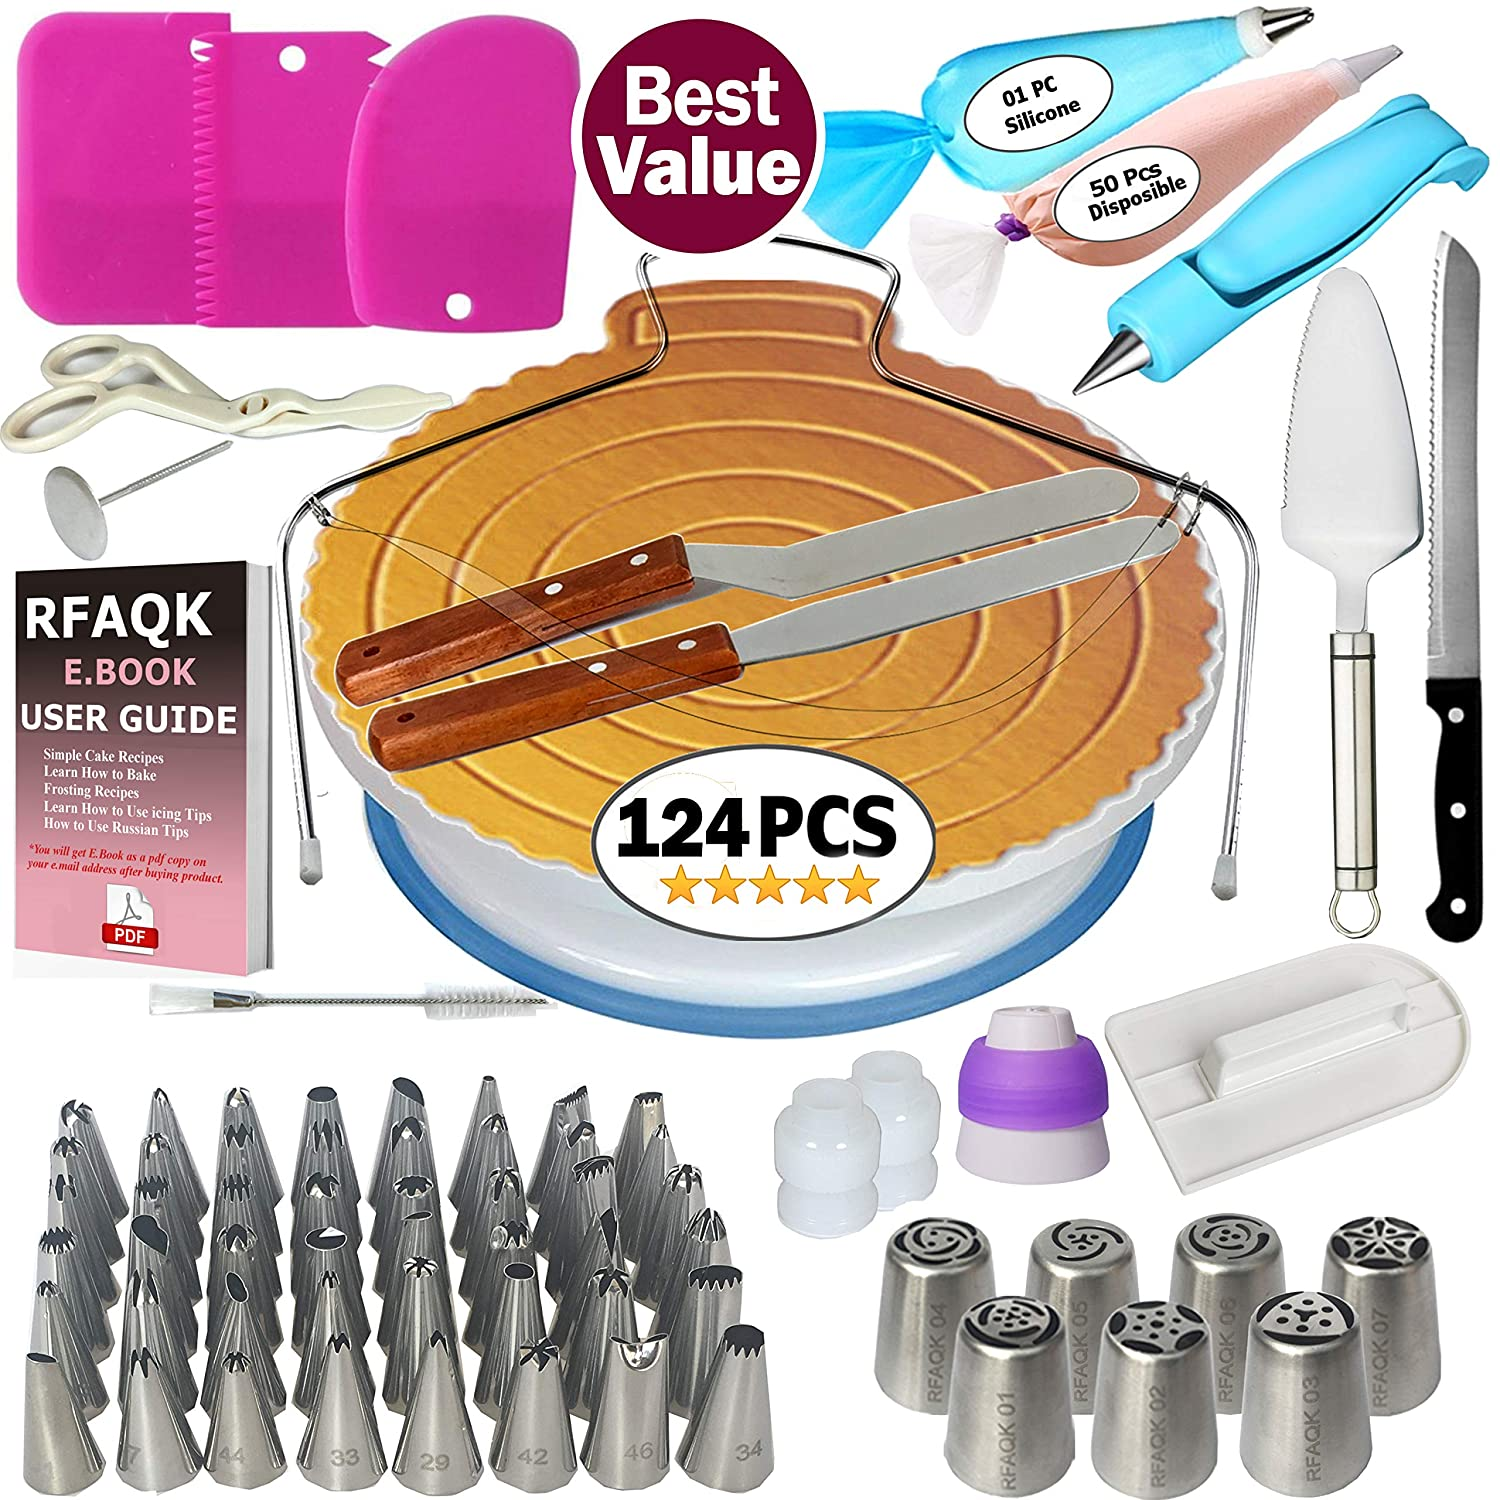 124 PCs Cake Decorating Supplies Kit for Beginners-1 Turntable stand- Cake server & knife set-48 Numbered Easy to use icing tips with pattern chart and E.Book-7 Russian Piping nozzles -2 Spatulas